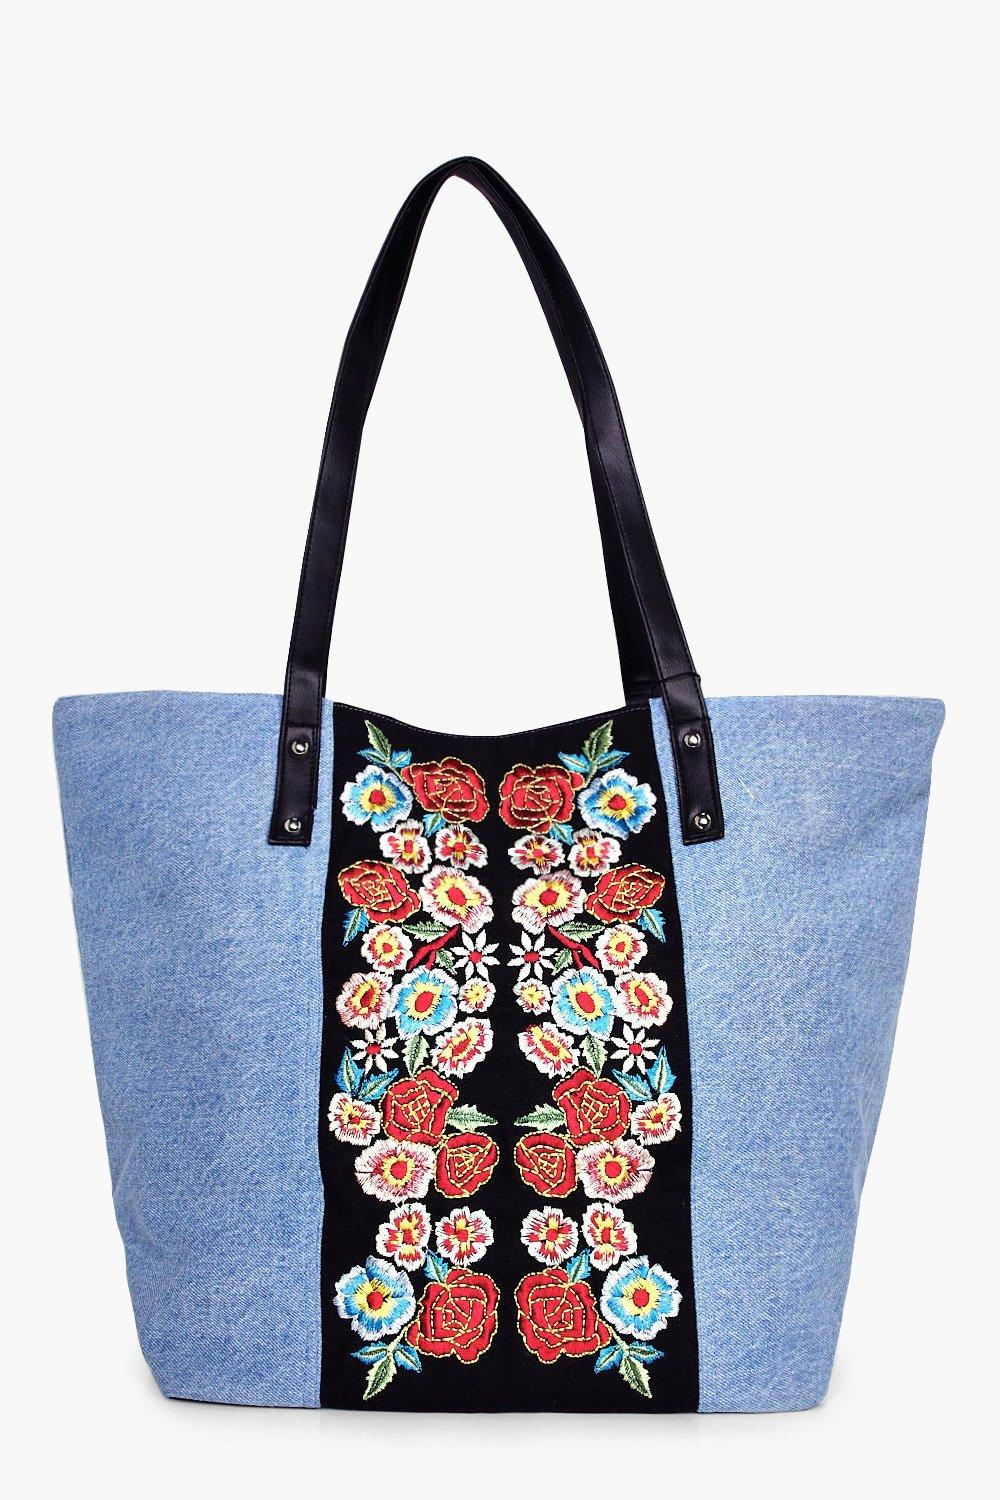 Denim Embroidered Beach Bag - denim-blue - Hannah